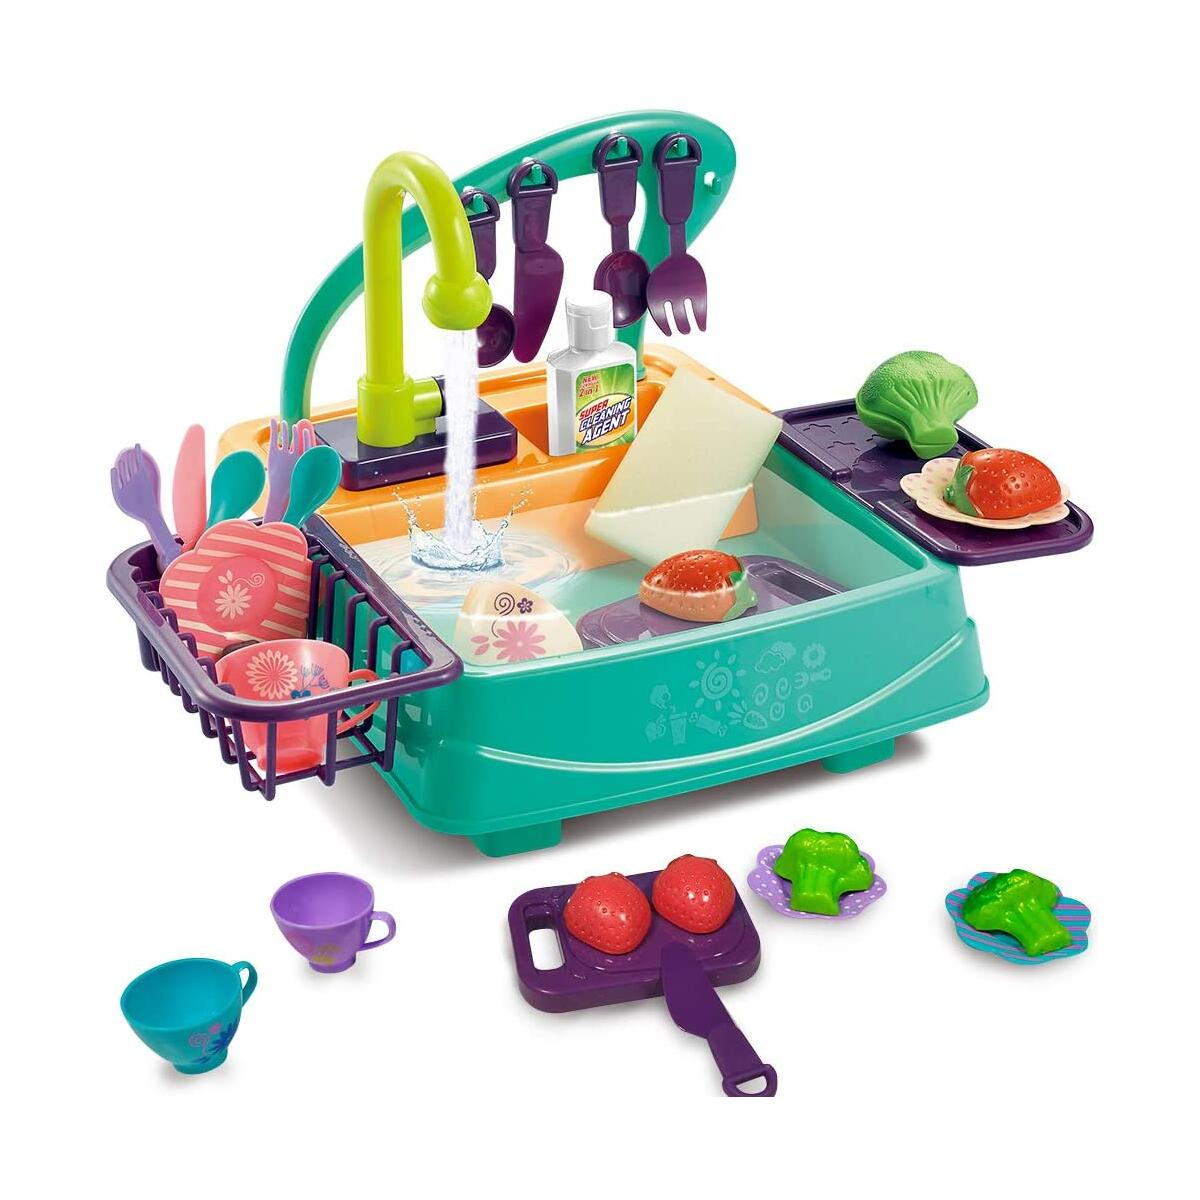 Happytime 27 Pieces Toy Kitchen Set Play Kitchen Toy Utensils Play Dishes Accessories Plates Dishwasher Playing Toy with Running Water, Play House Pretend Role Play Toys for Boys Girls